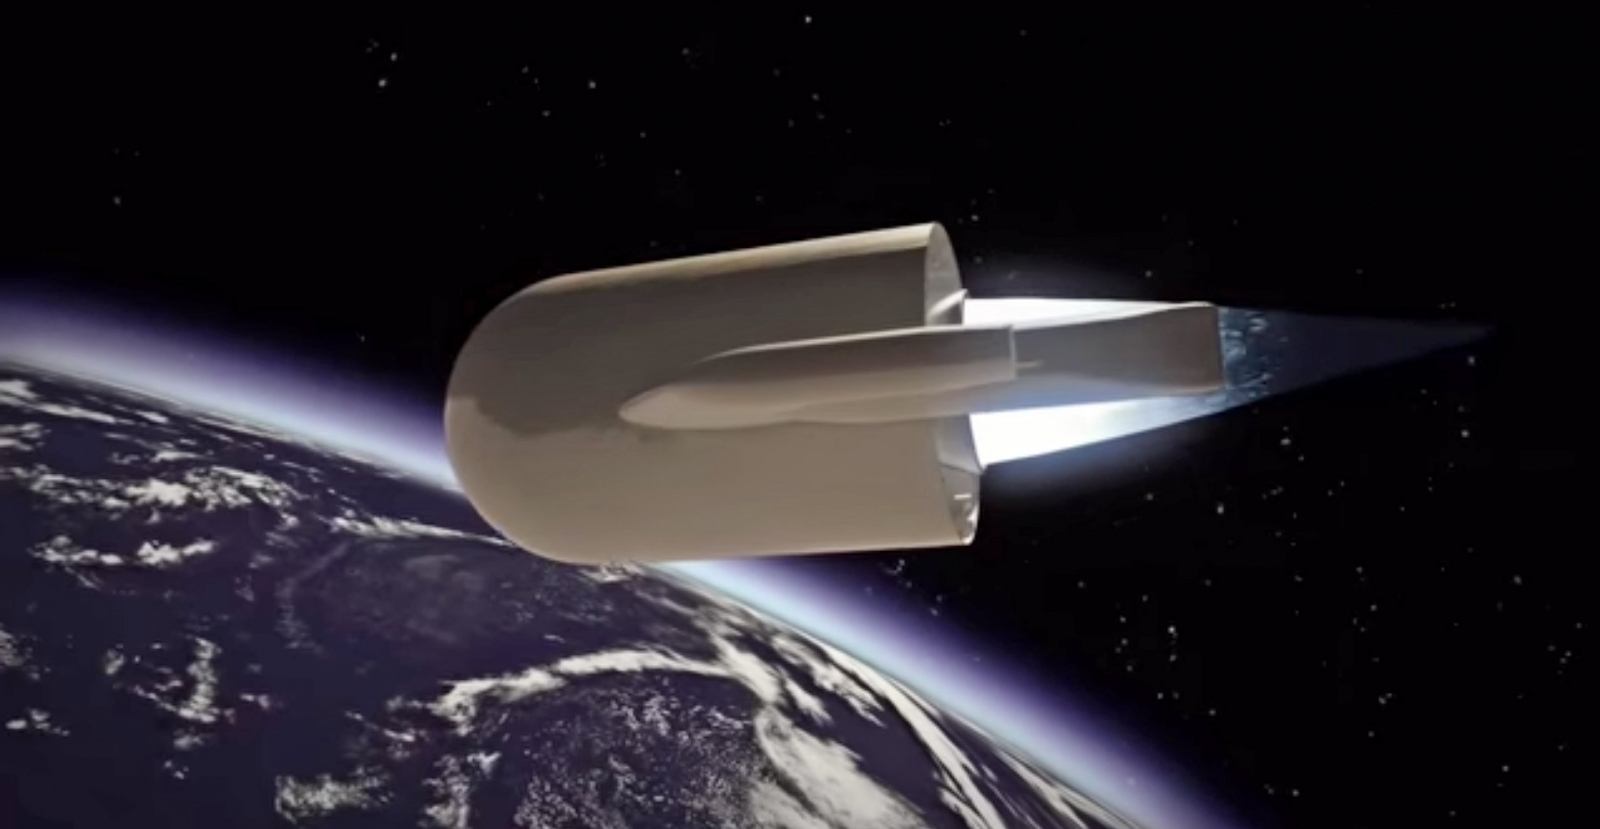 Airbus has invented a reusable rocket launcher